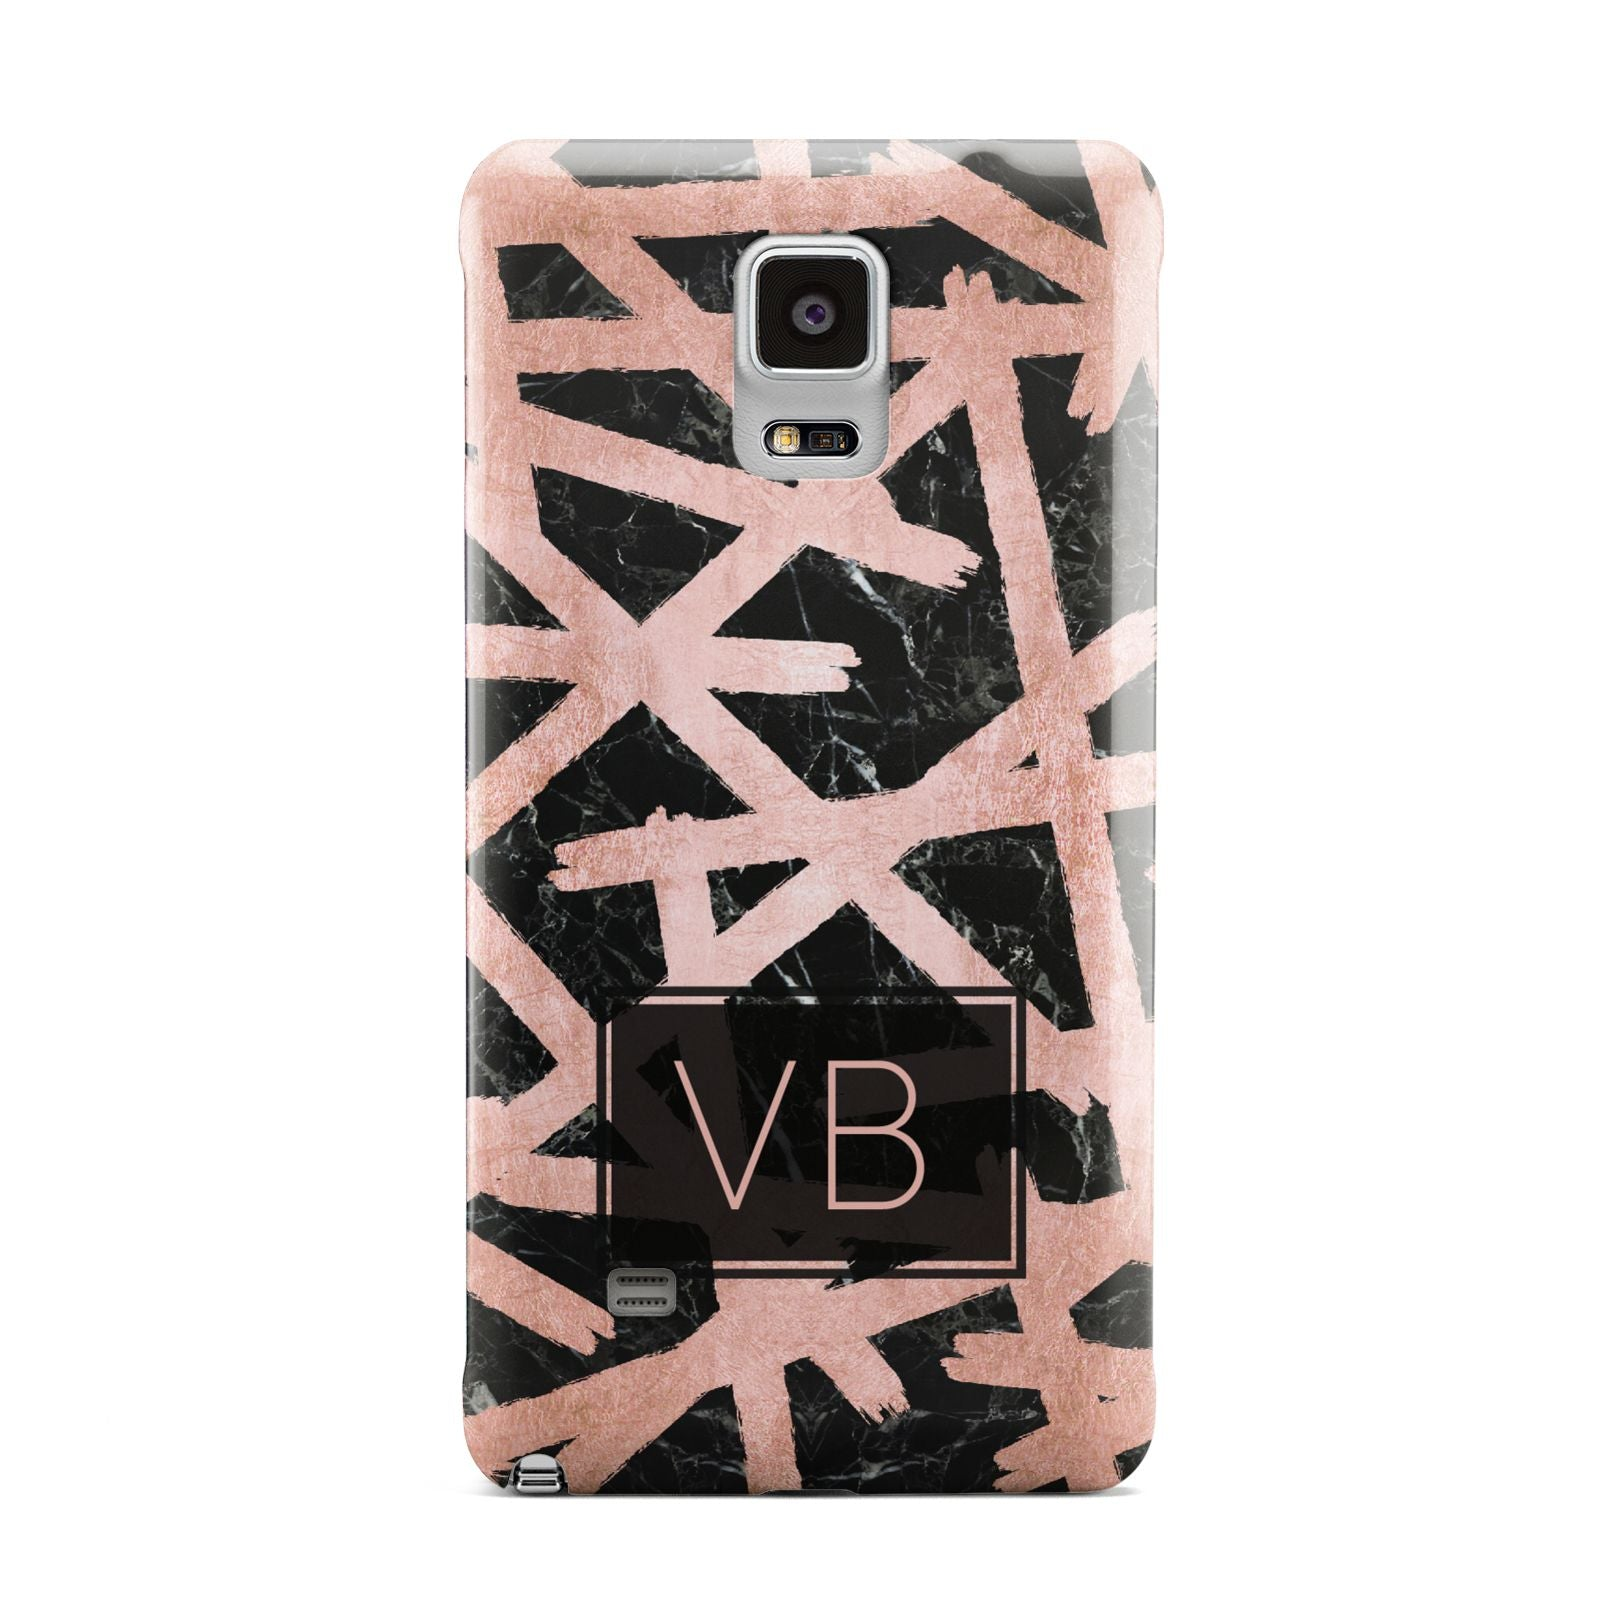 Personalised Rose Gold Effect Samsung Galaxy Note 4 Case